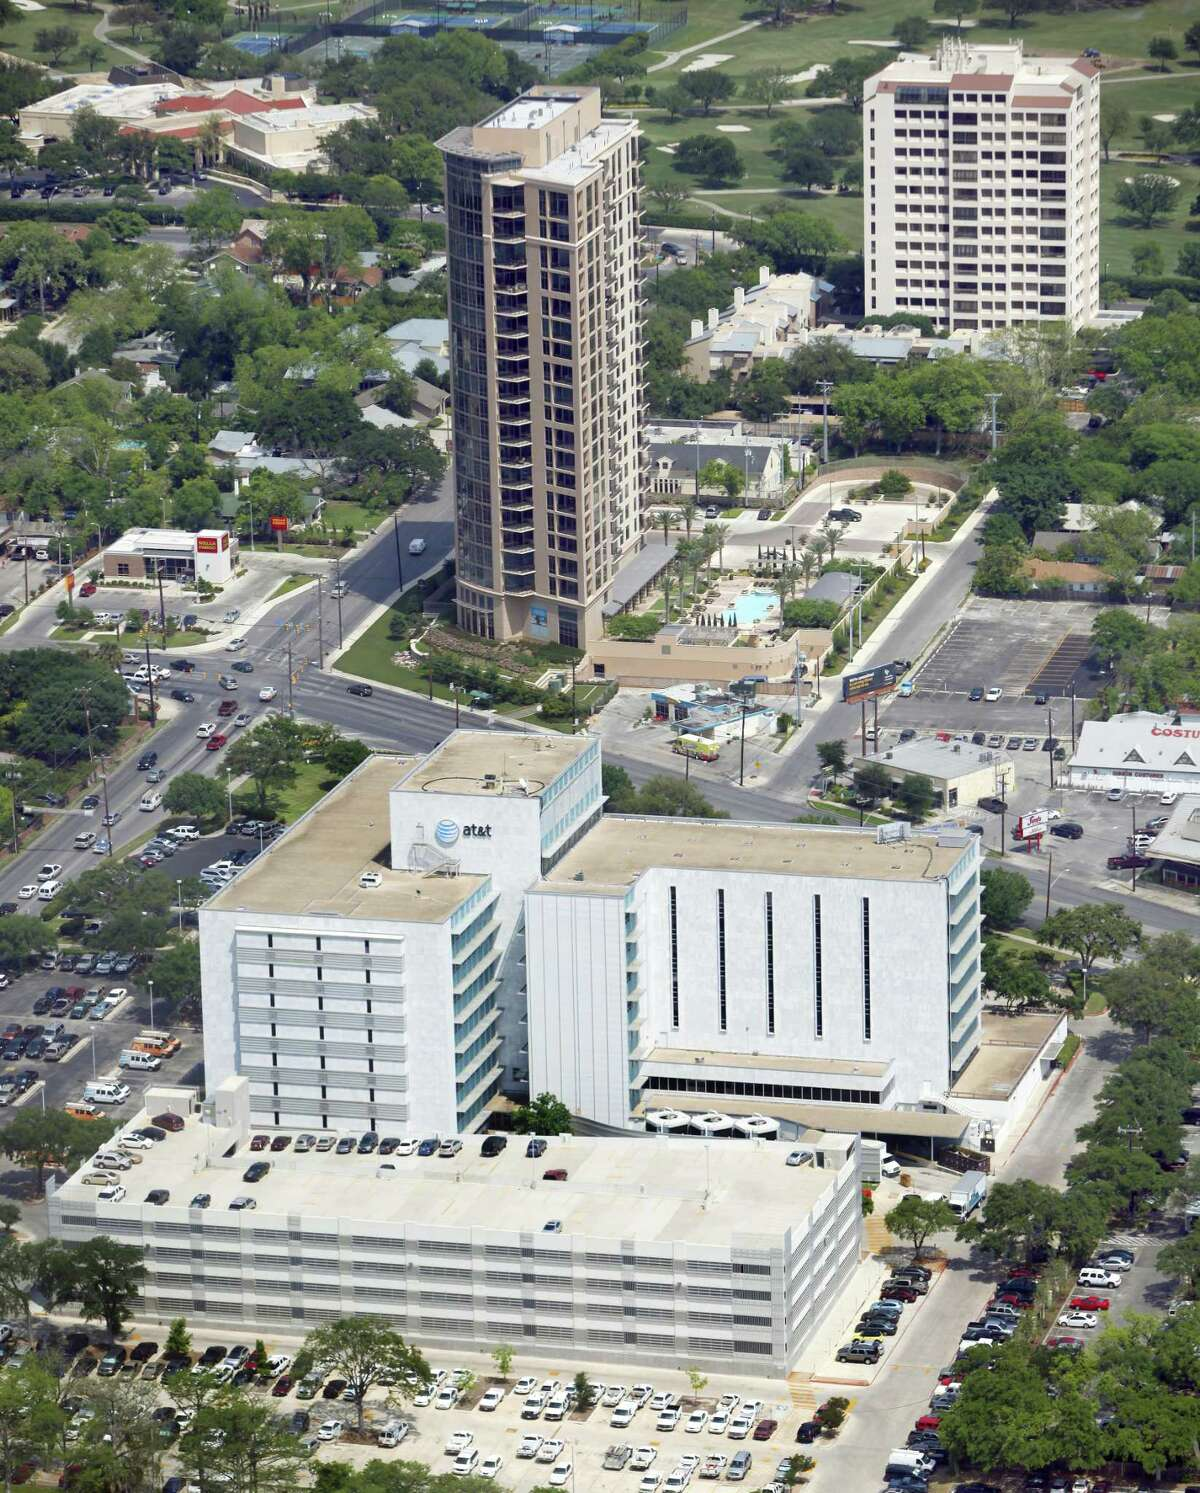 A regional office building, foreground, for AT&T is seen in this April 10, 2012 aerial photo. The Broadway Building building that was built at the site of the original Earl Abel's restaurant is seen behind that. The last building in the background is the Four Thousand One Condos building at 4001 N. New Braunfels. The AT&T building was originally built for USAA as the company's second headquarters. (William Luther/wluther@express-news.net